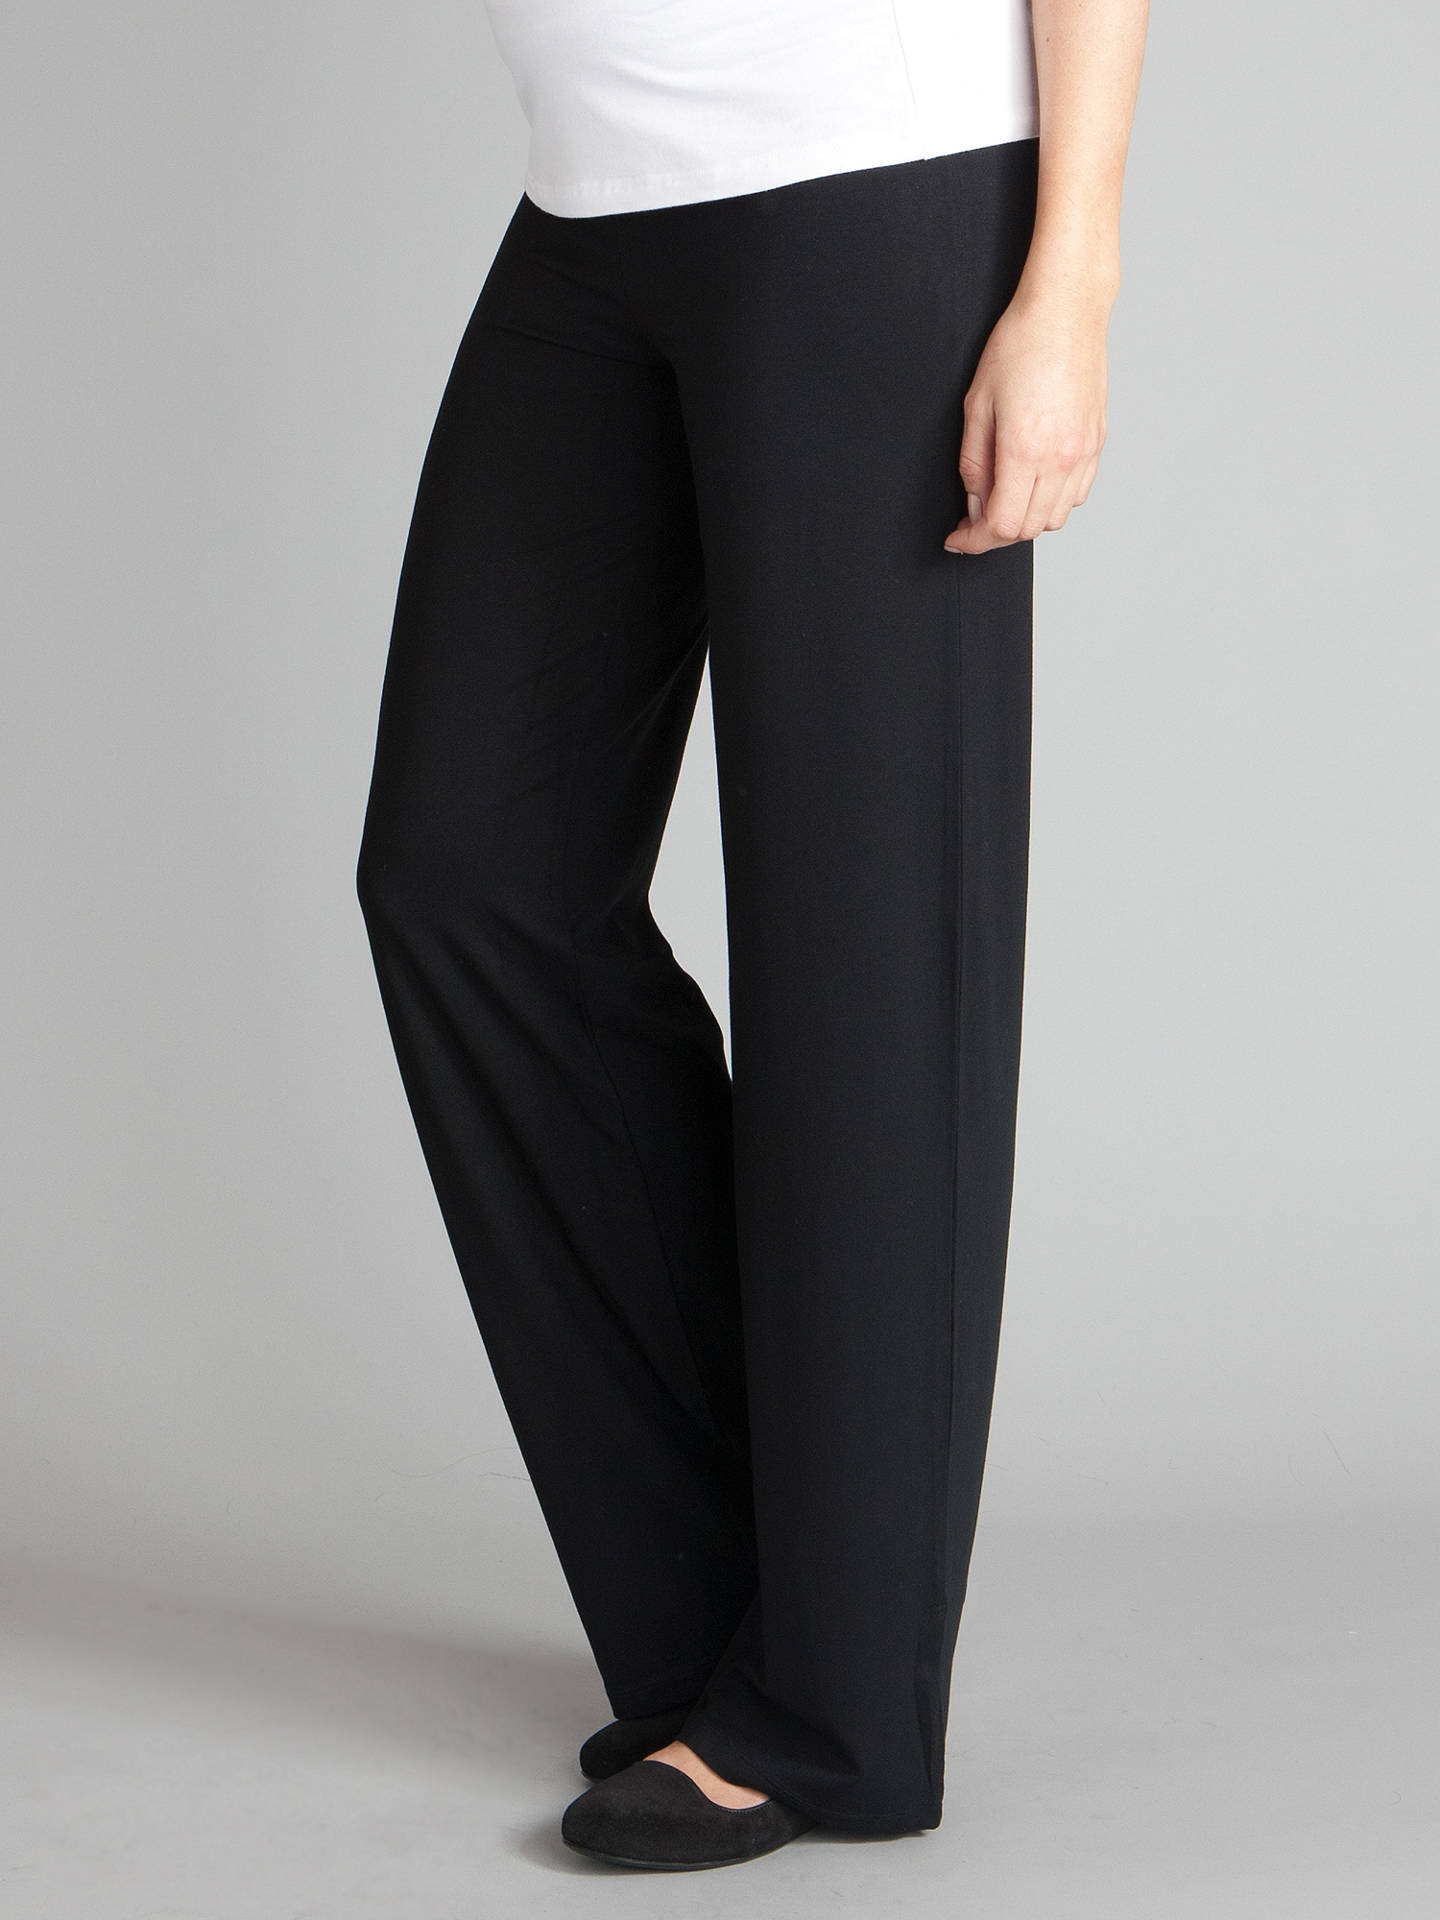 26599b8117425 Buy Séraphine Monica Roll Over Maternity Trousers, Black, 8 Online at  johnlewis.com ...